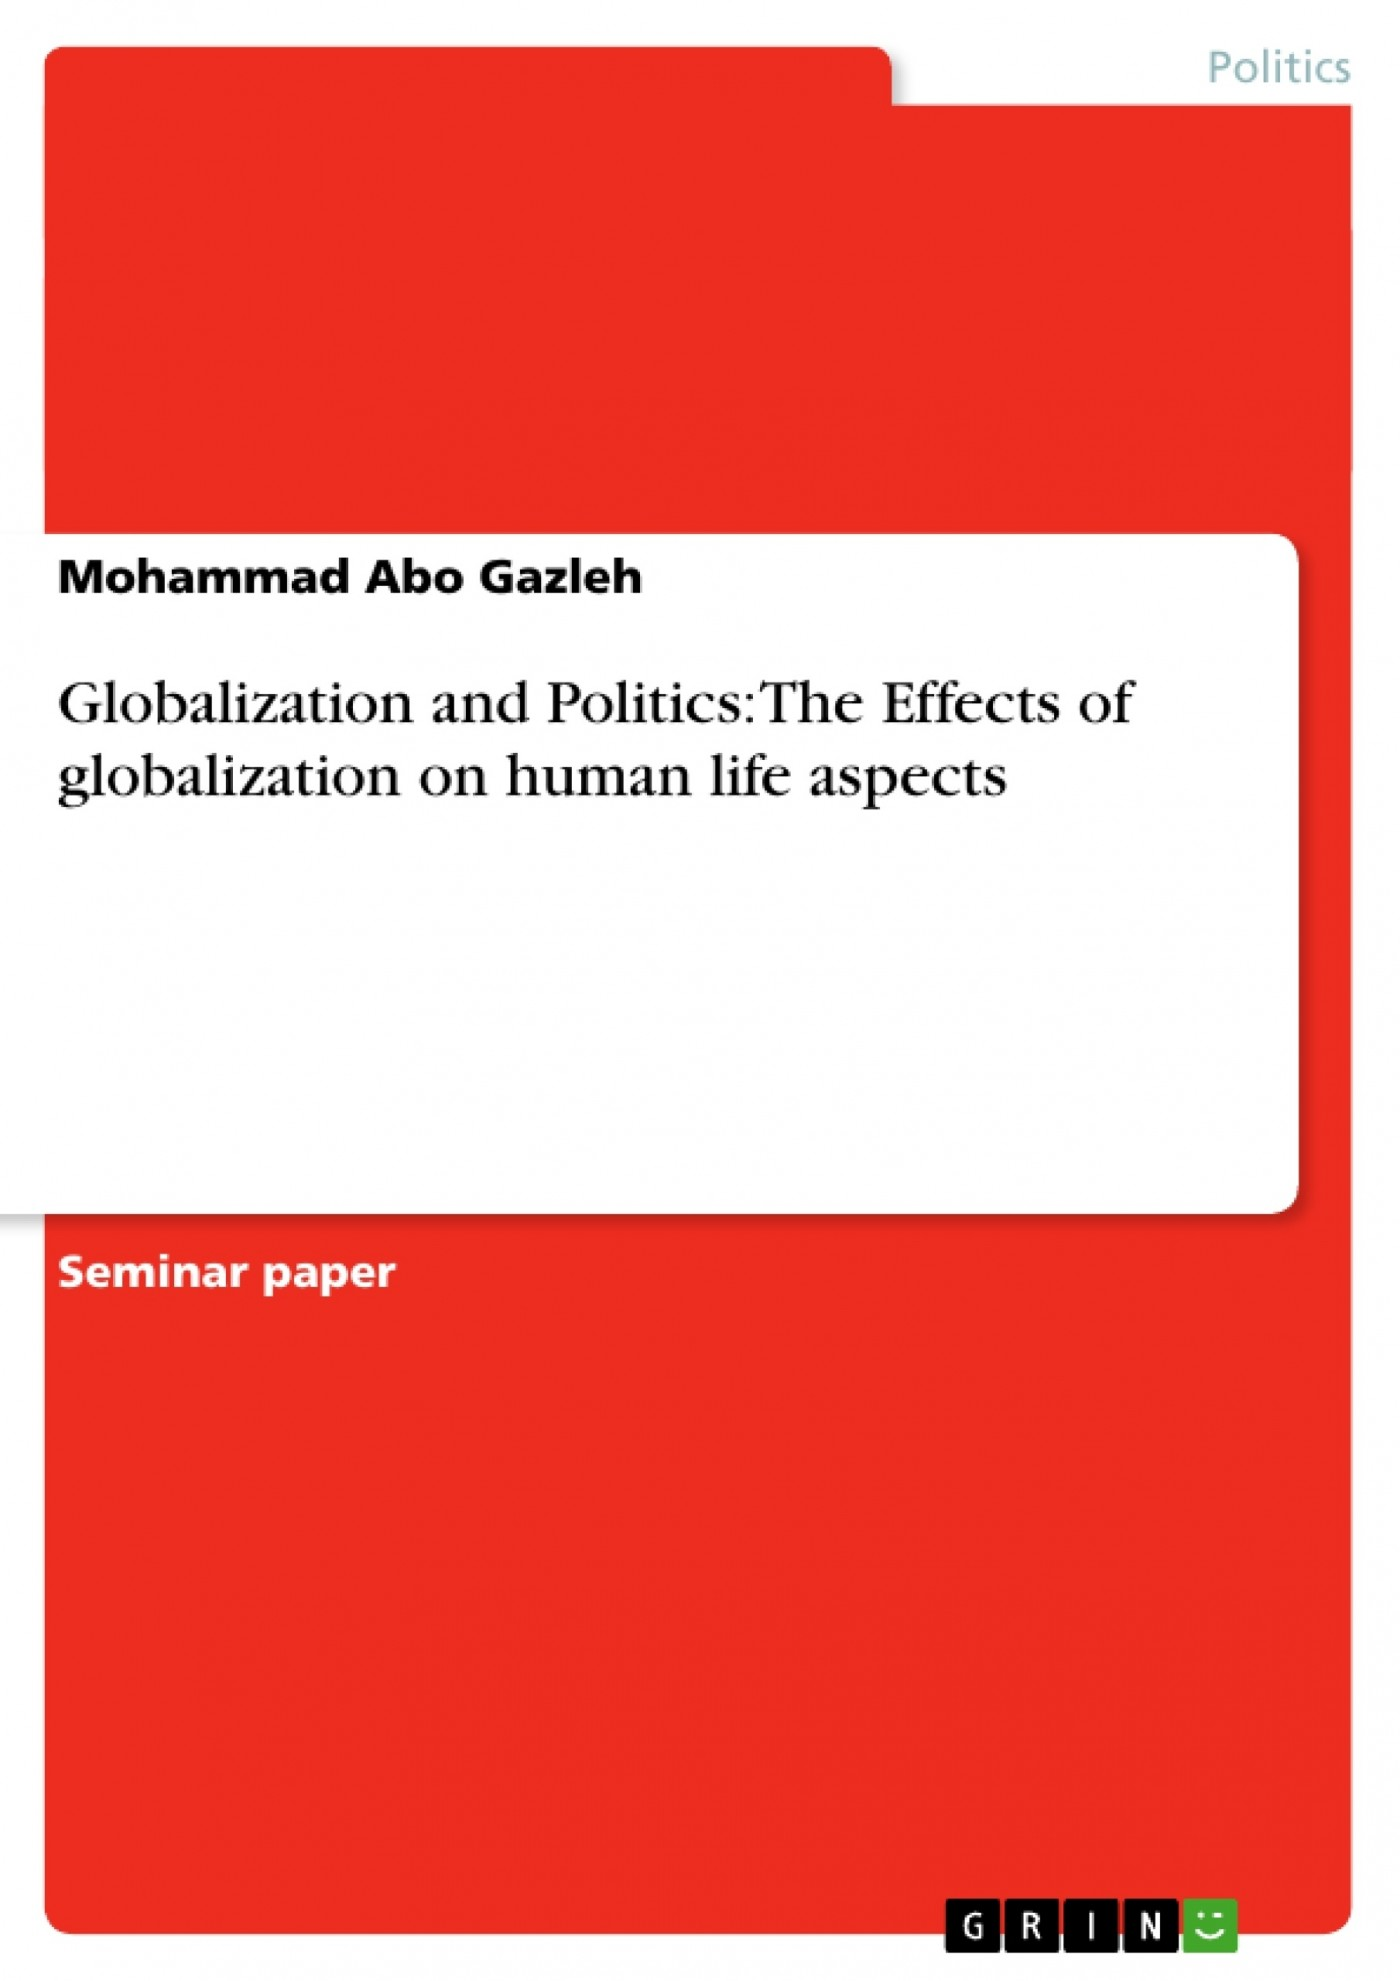 017 110500 0 Globalization Conclusion Essay Wonderful 1400